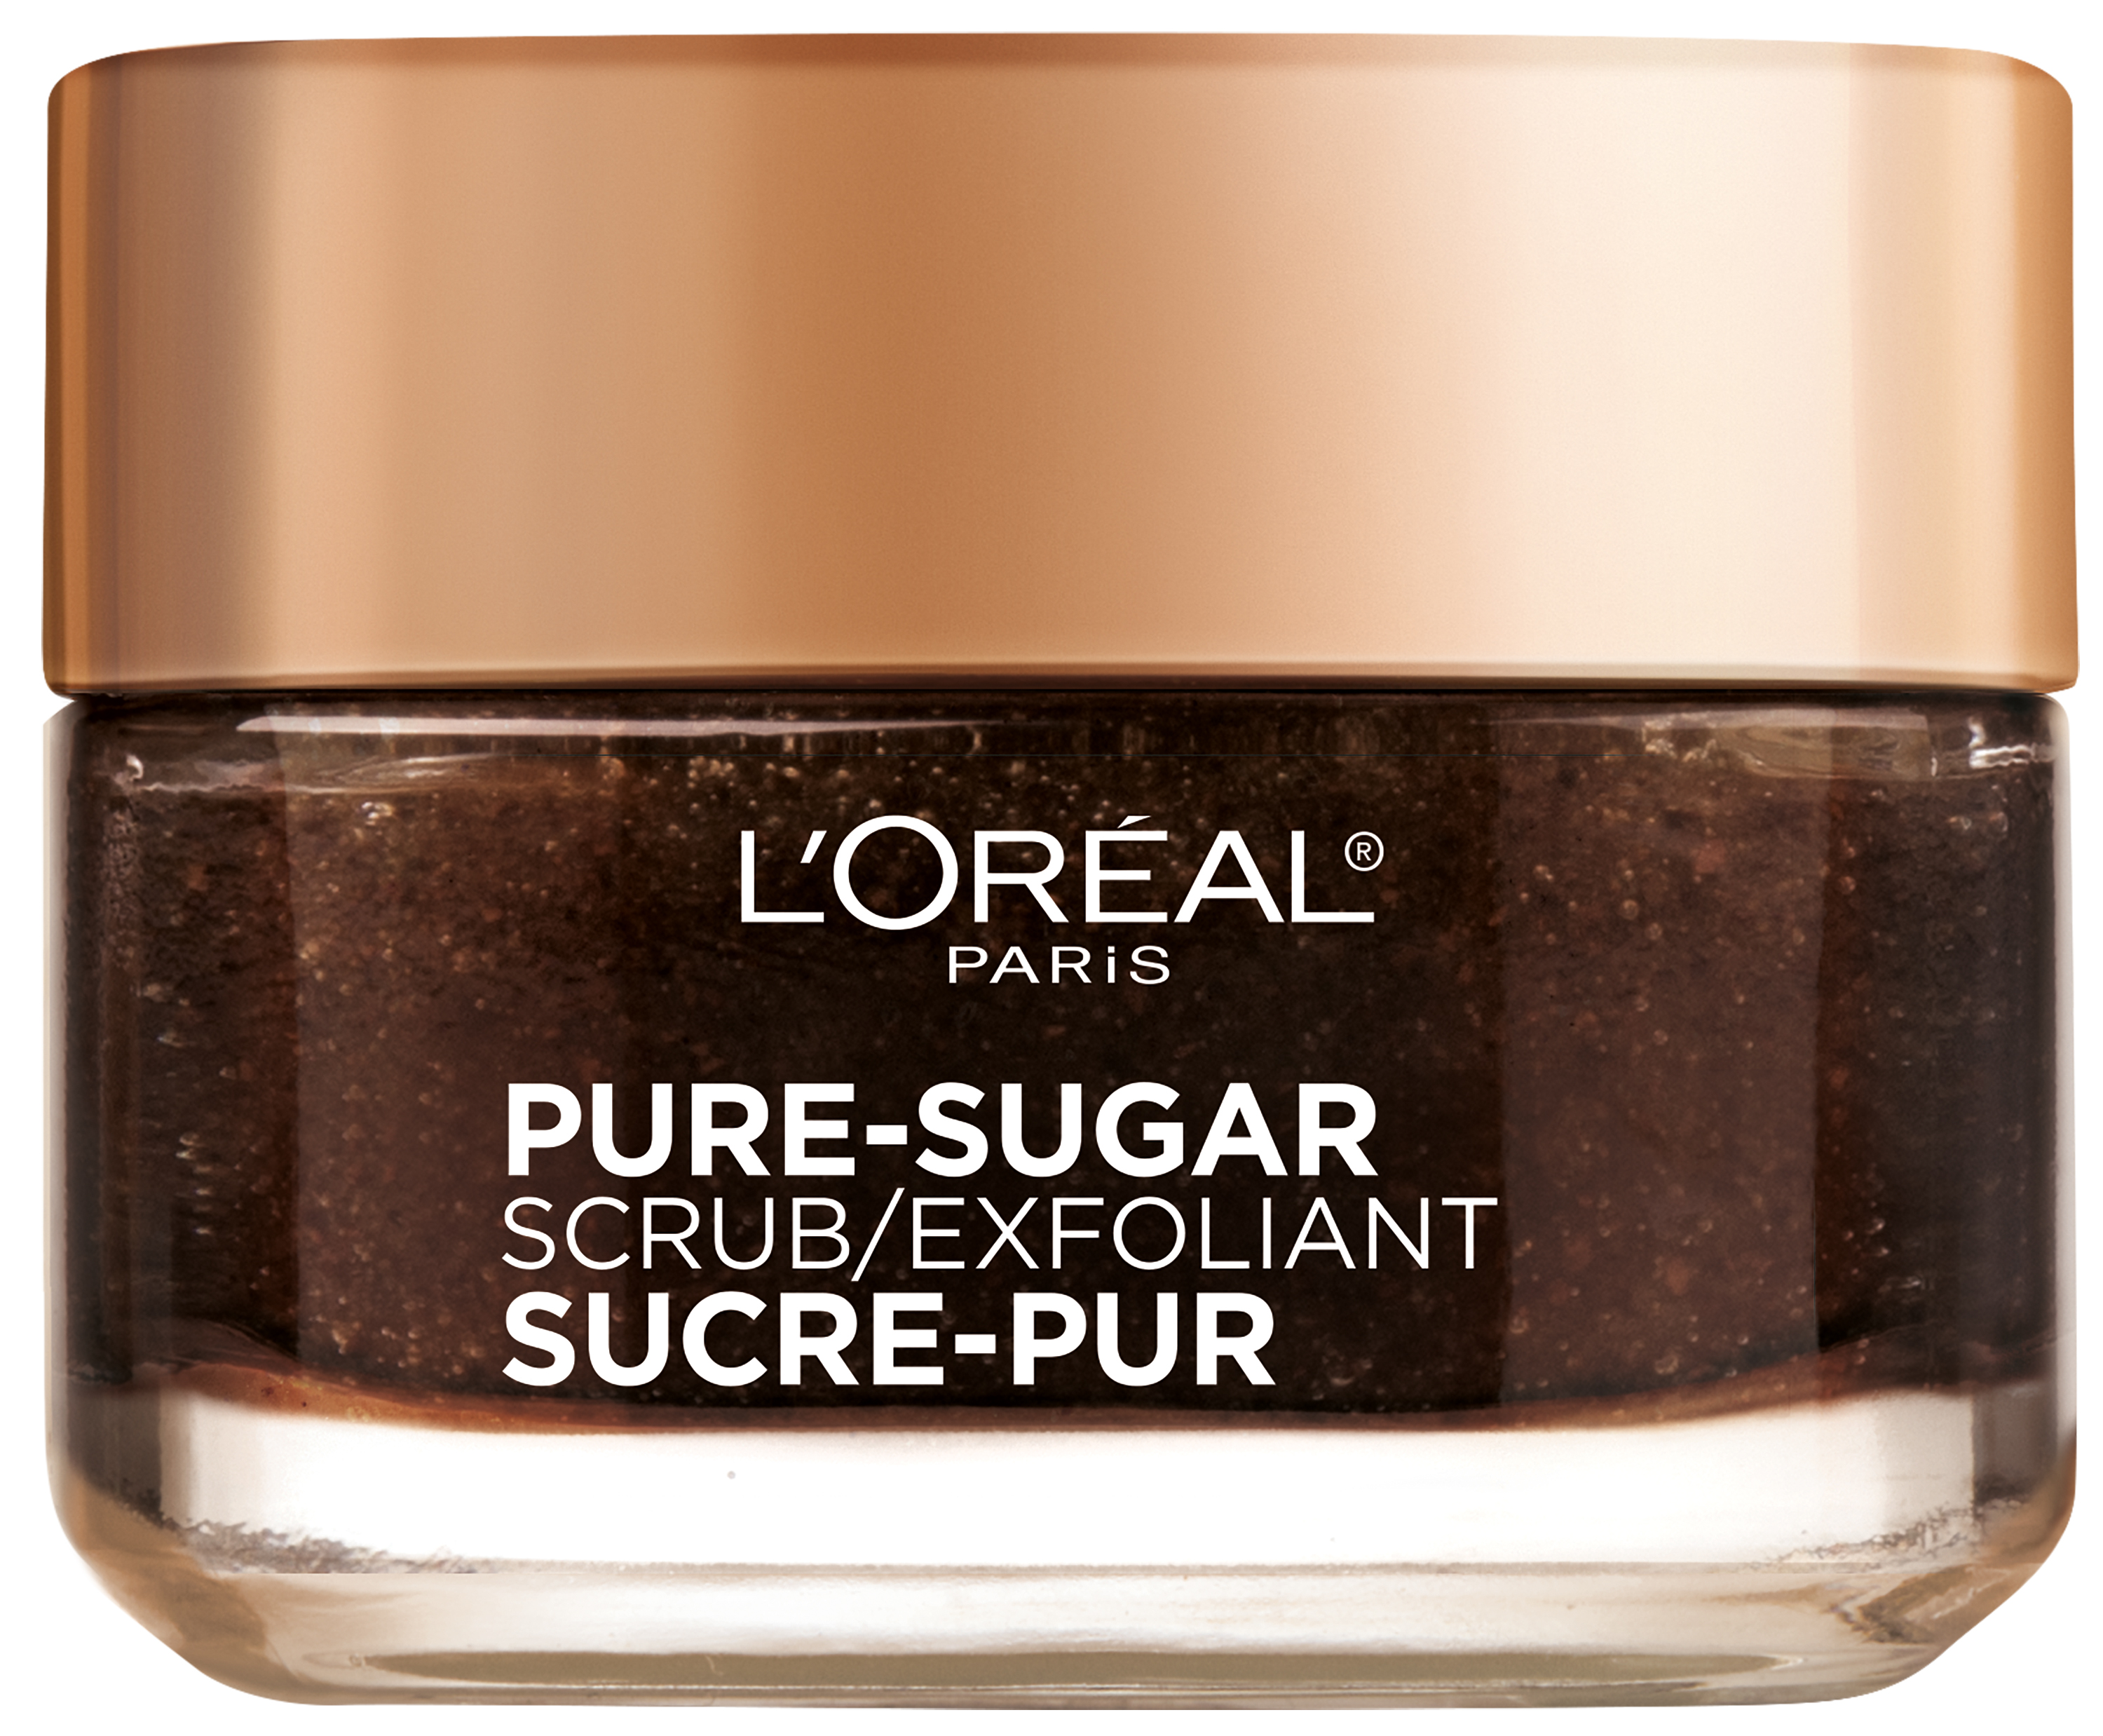 L'Oréal Paris Pure-Sugar Resurface & Energize Kona Coffee Scrub